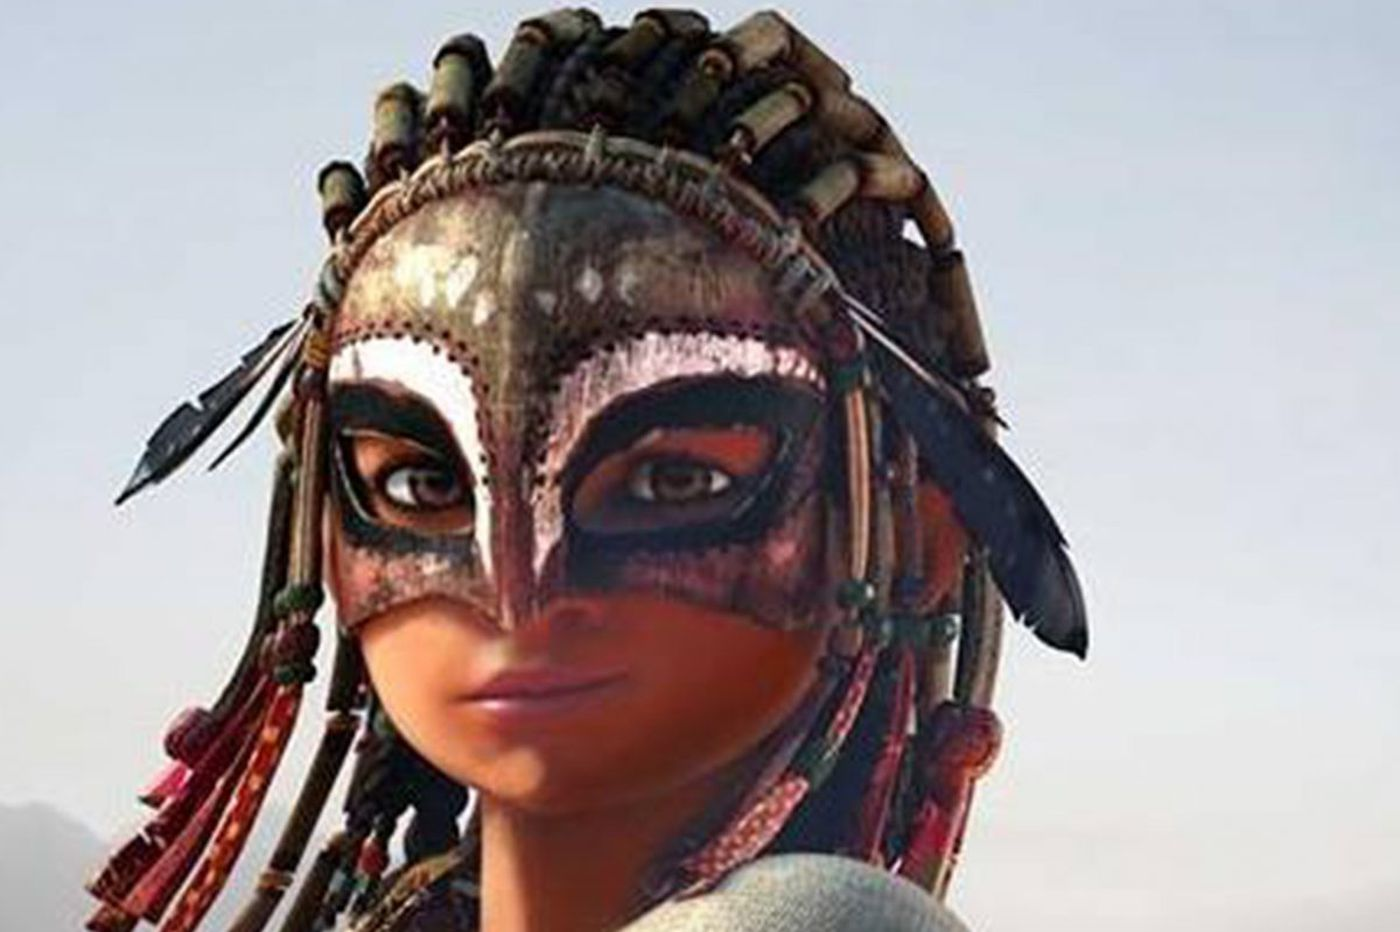 'Bilal: A New Breed of Hero': Animated fare out of United Arab Emirates uneven in its artistry